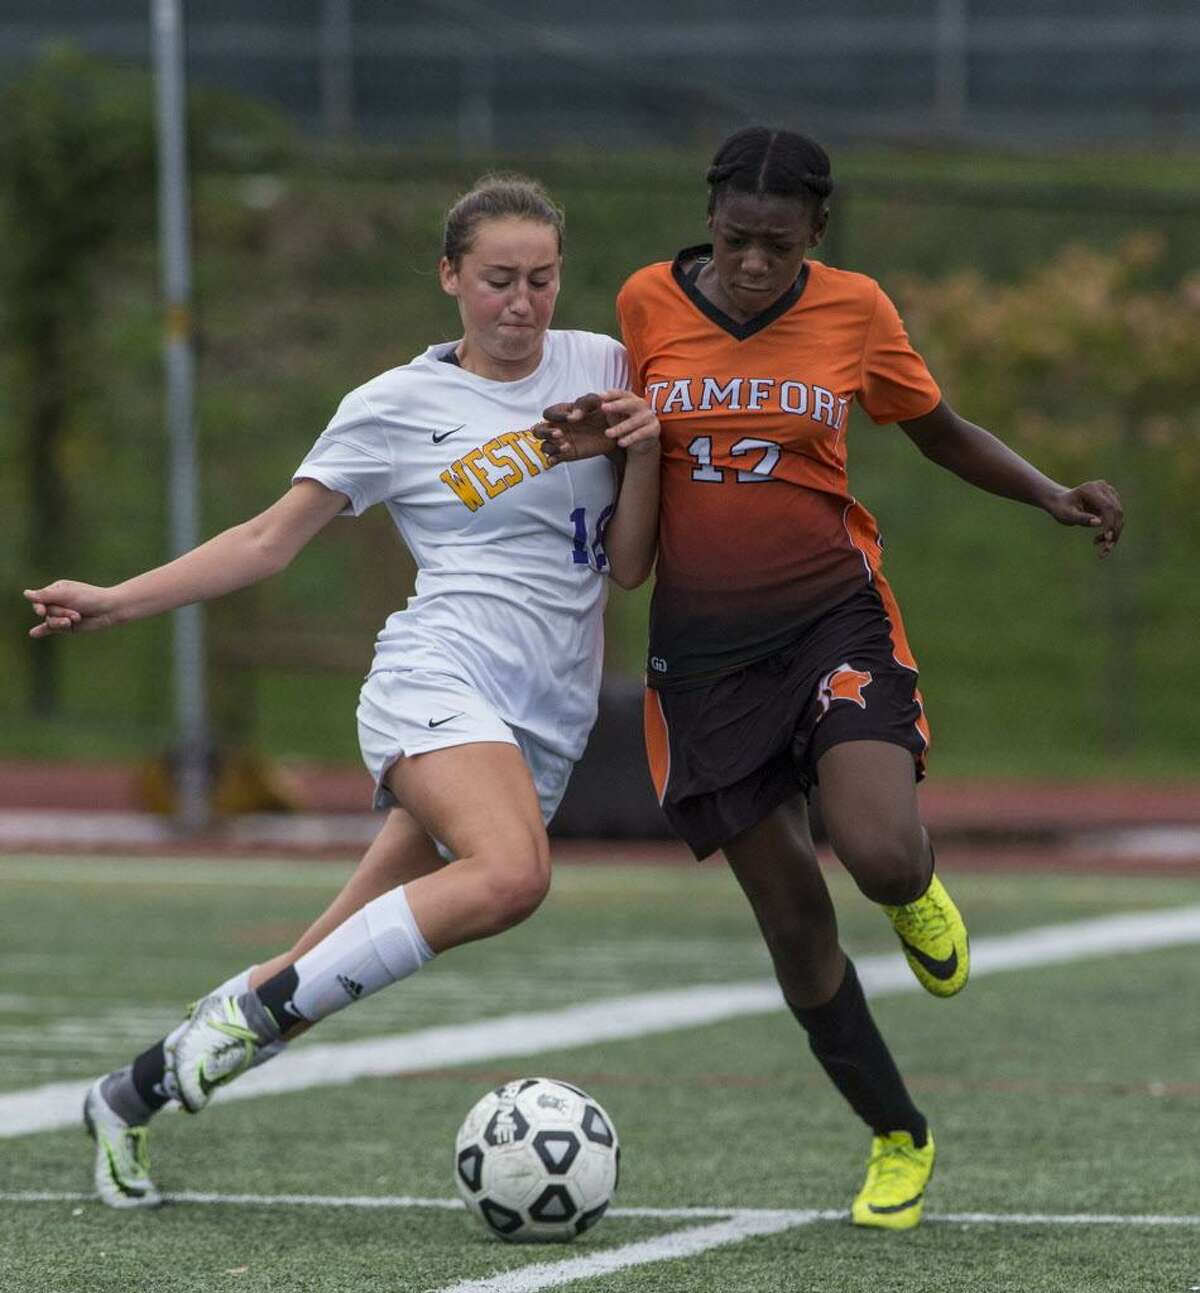 Stamford's Chanille Assevero is back for another season with the Black Knights.